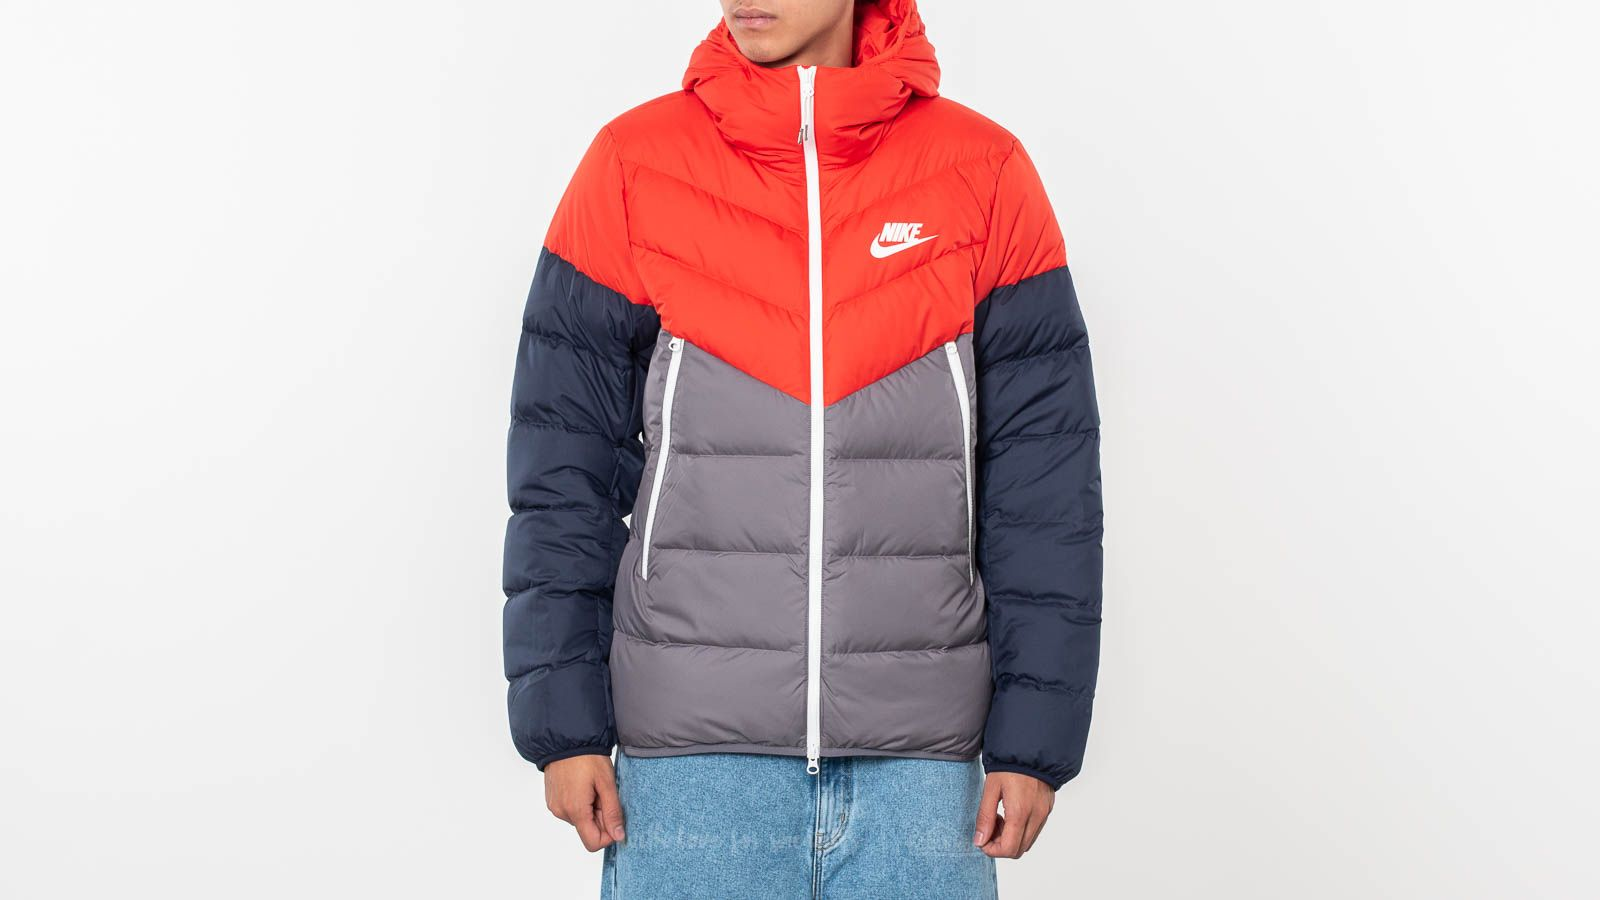 045108a49 Nike Sportswear Down Filled Hooded Windrunner Red/ Gun Smoke/ Sail ...